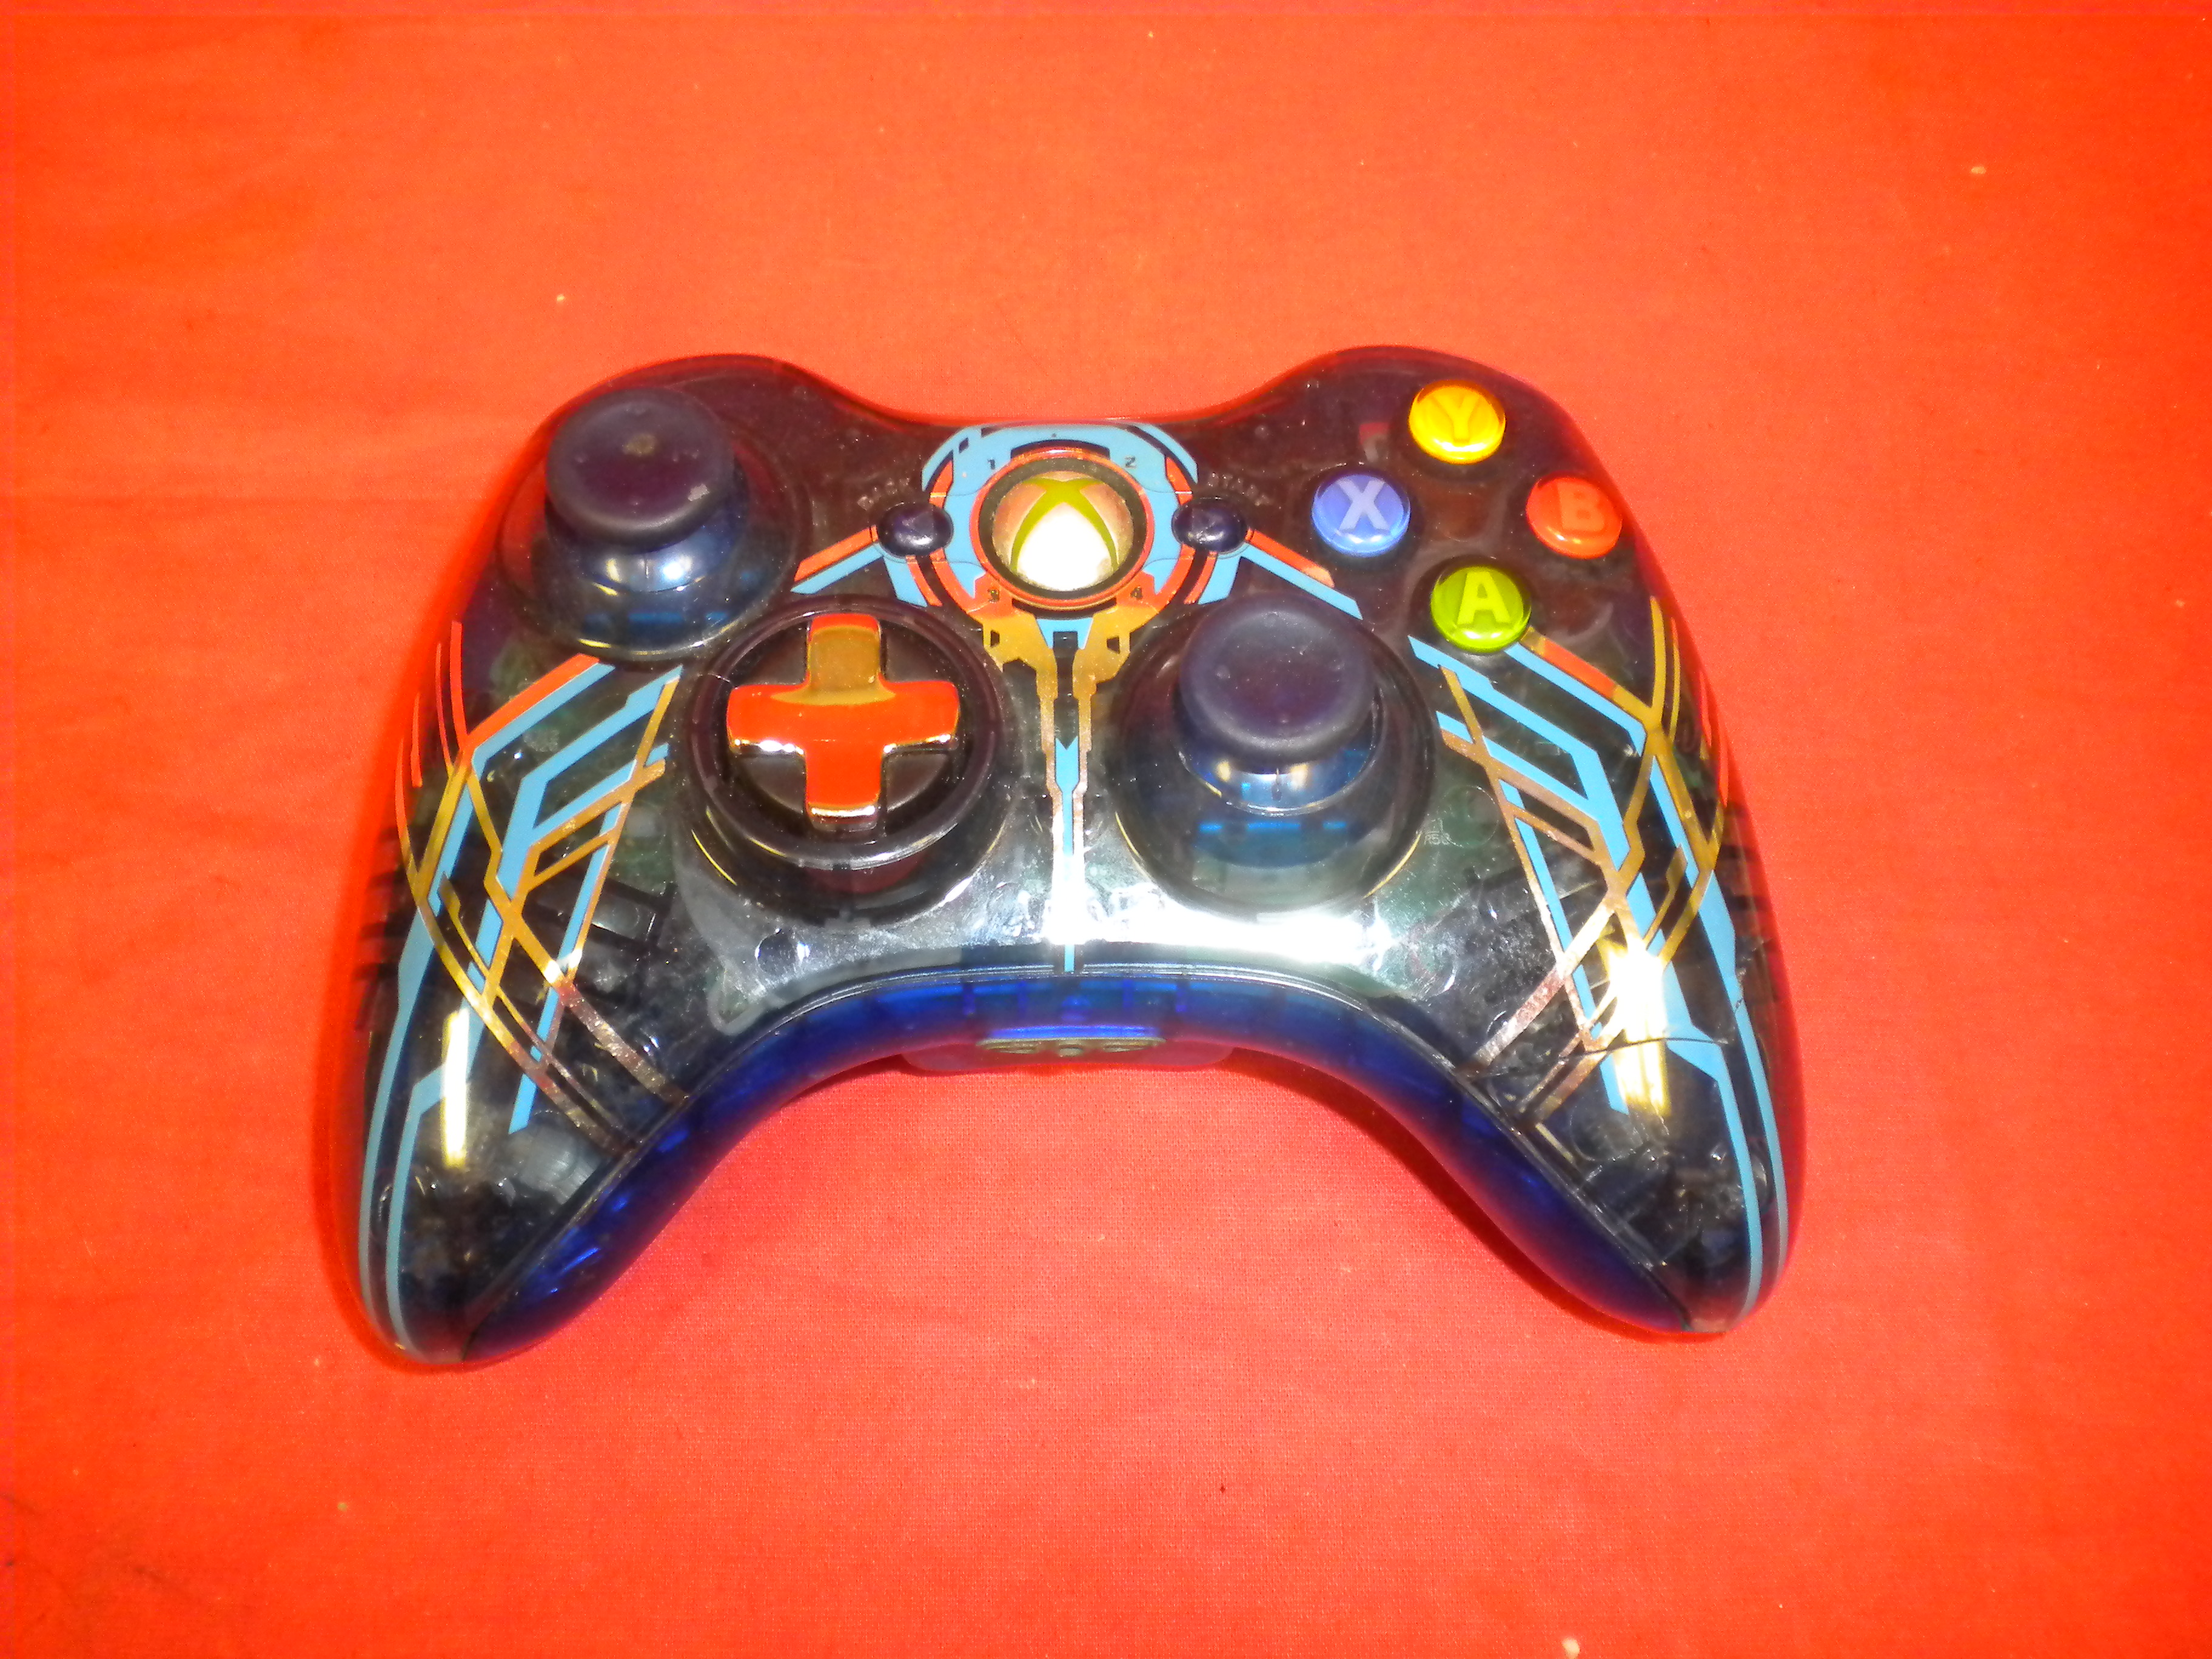 Broken Xbox 360 Controller With Blue And Silver Custom Housing For